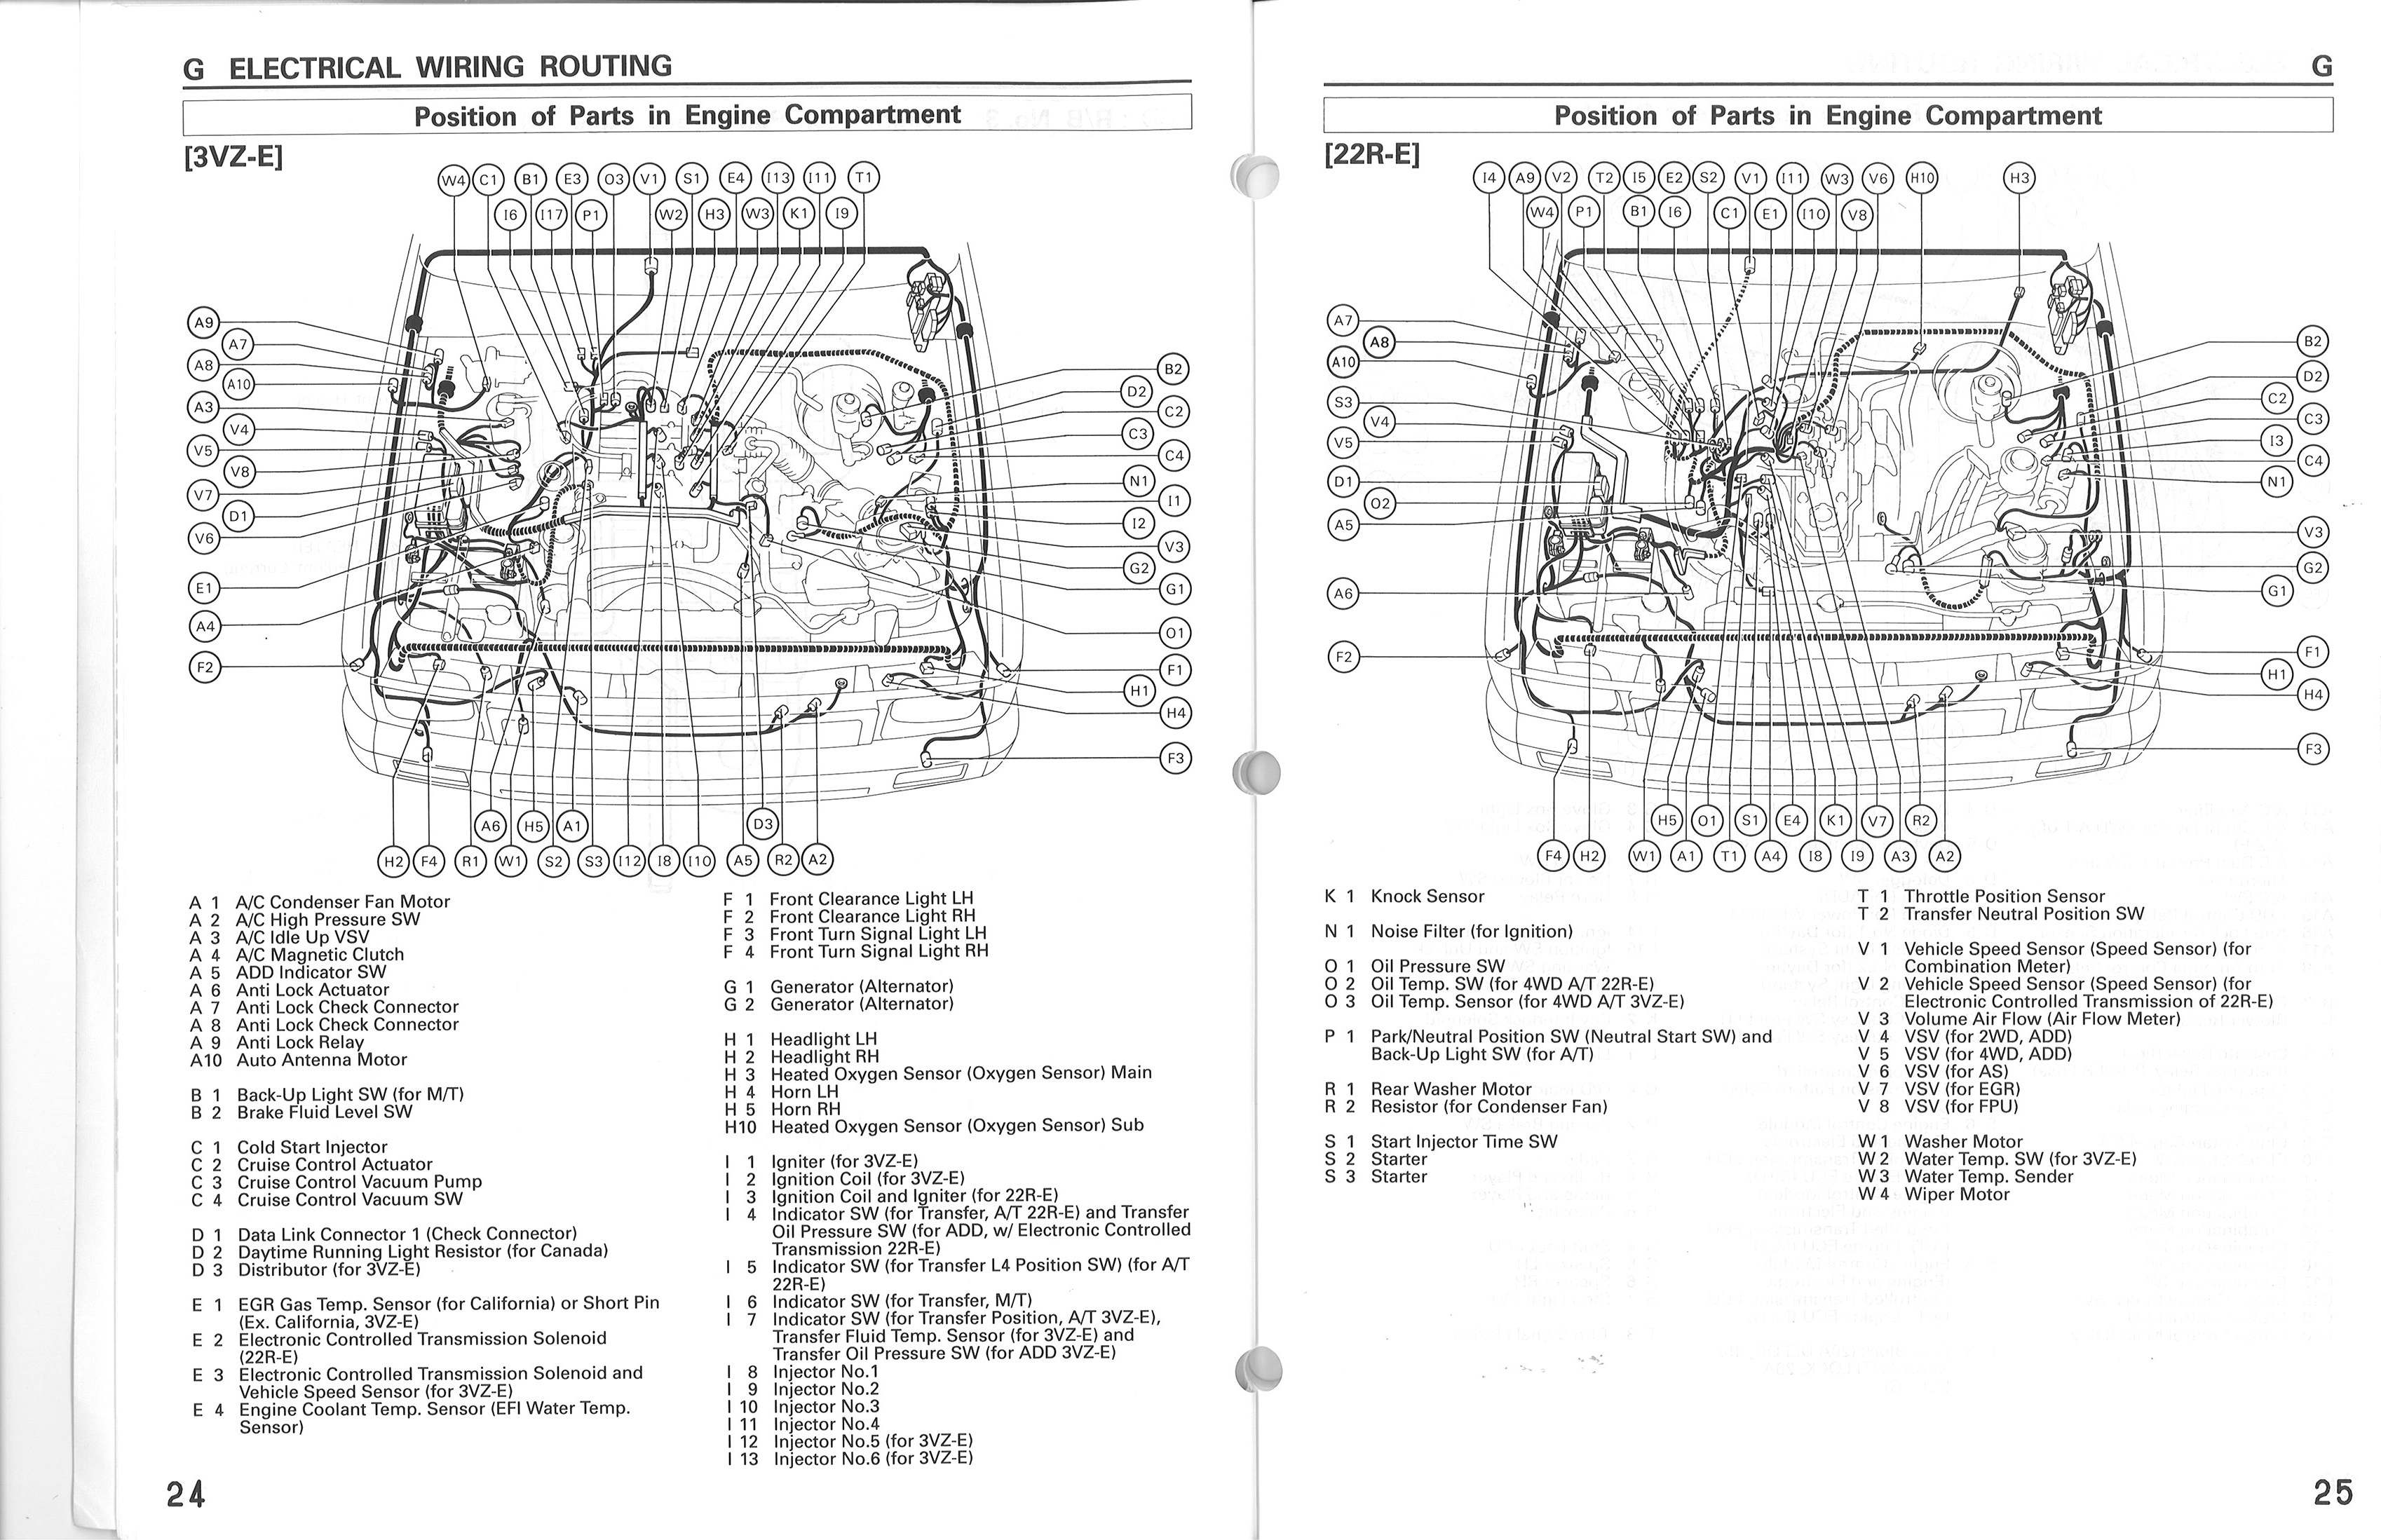 1991 Toyota Pickup Engine Diagram Real Wiring 1990 4runner 89 22re Get Free Image About 1989 Harness 4x4